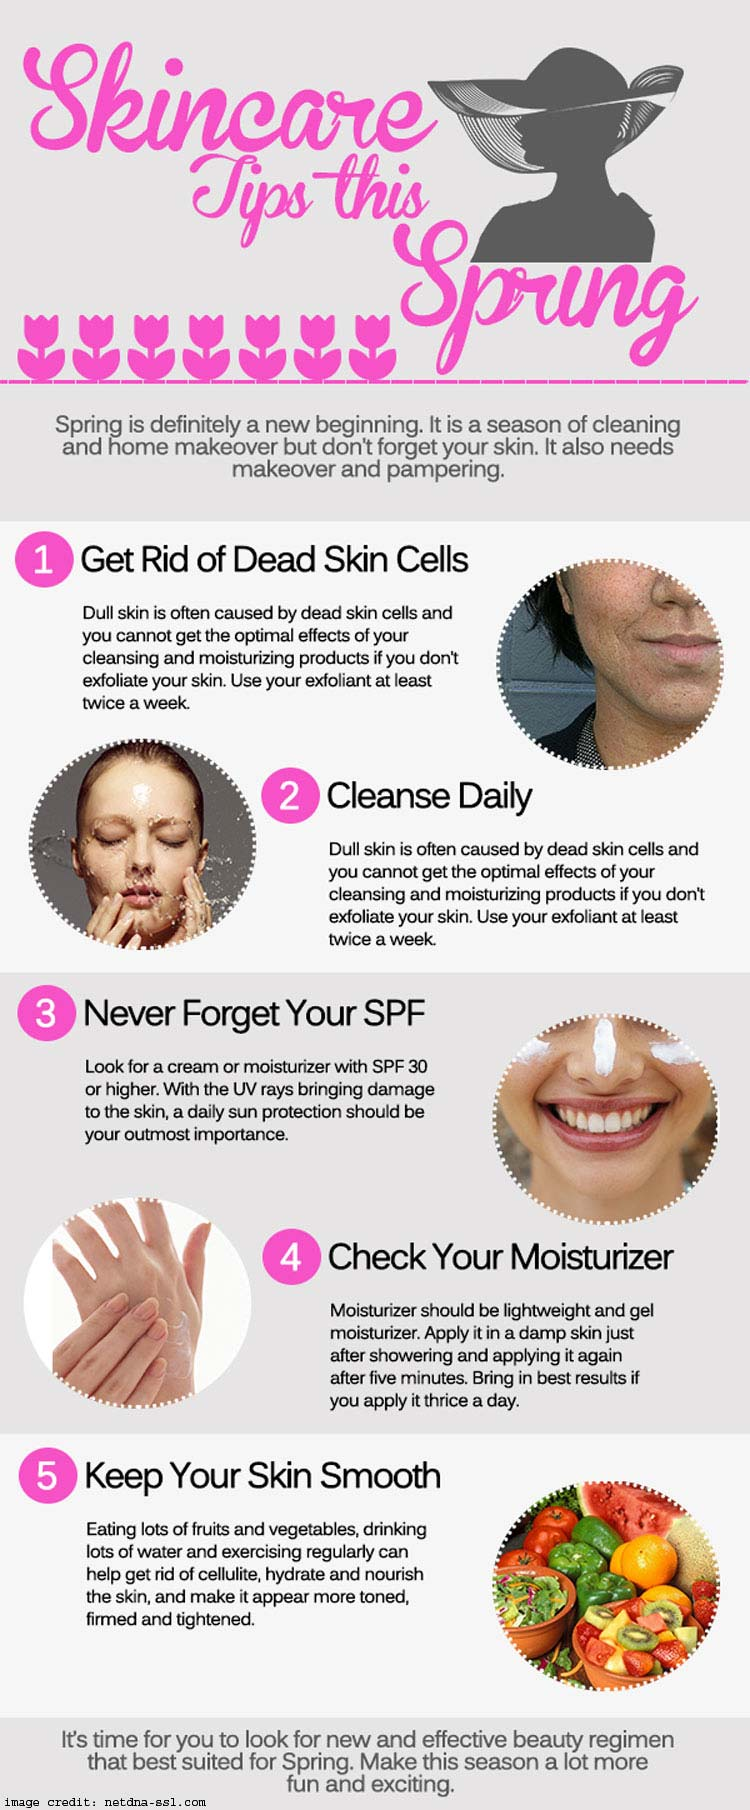 Hydrate Your Skin Properly